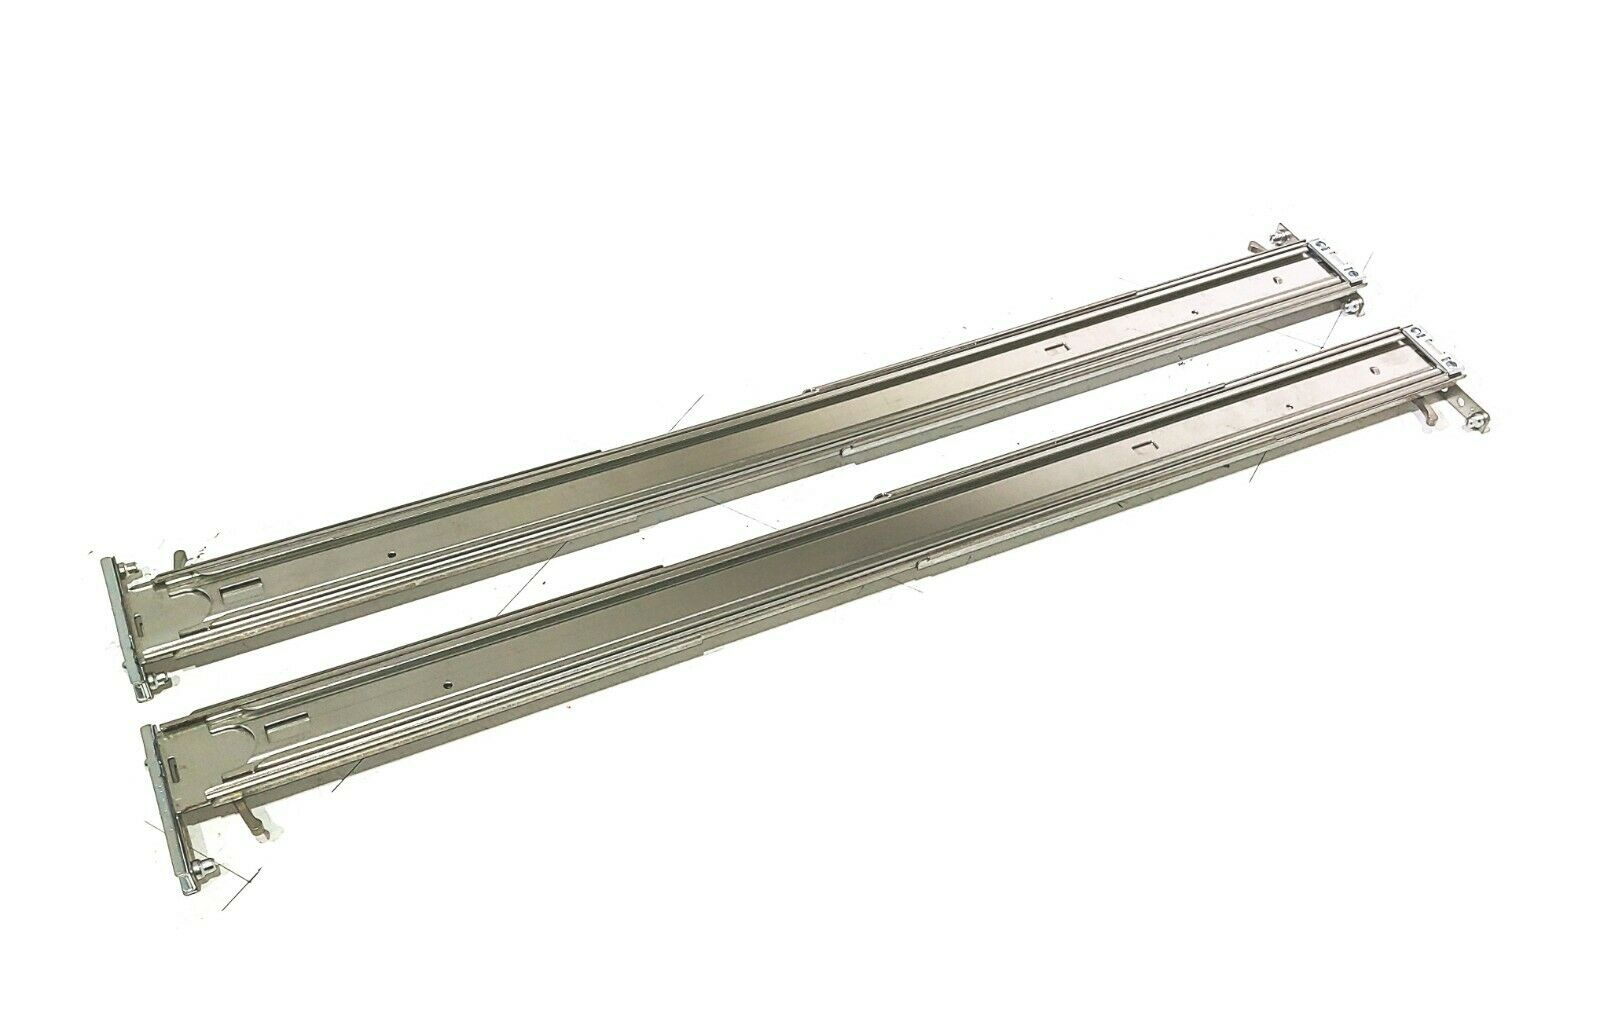 HP ProLiant DL380 G8 G9 SFF 2U Easy Install Rack Rails - OUTER ONLY  718225-001